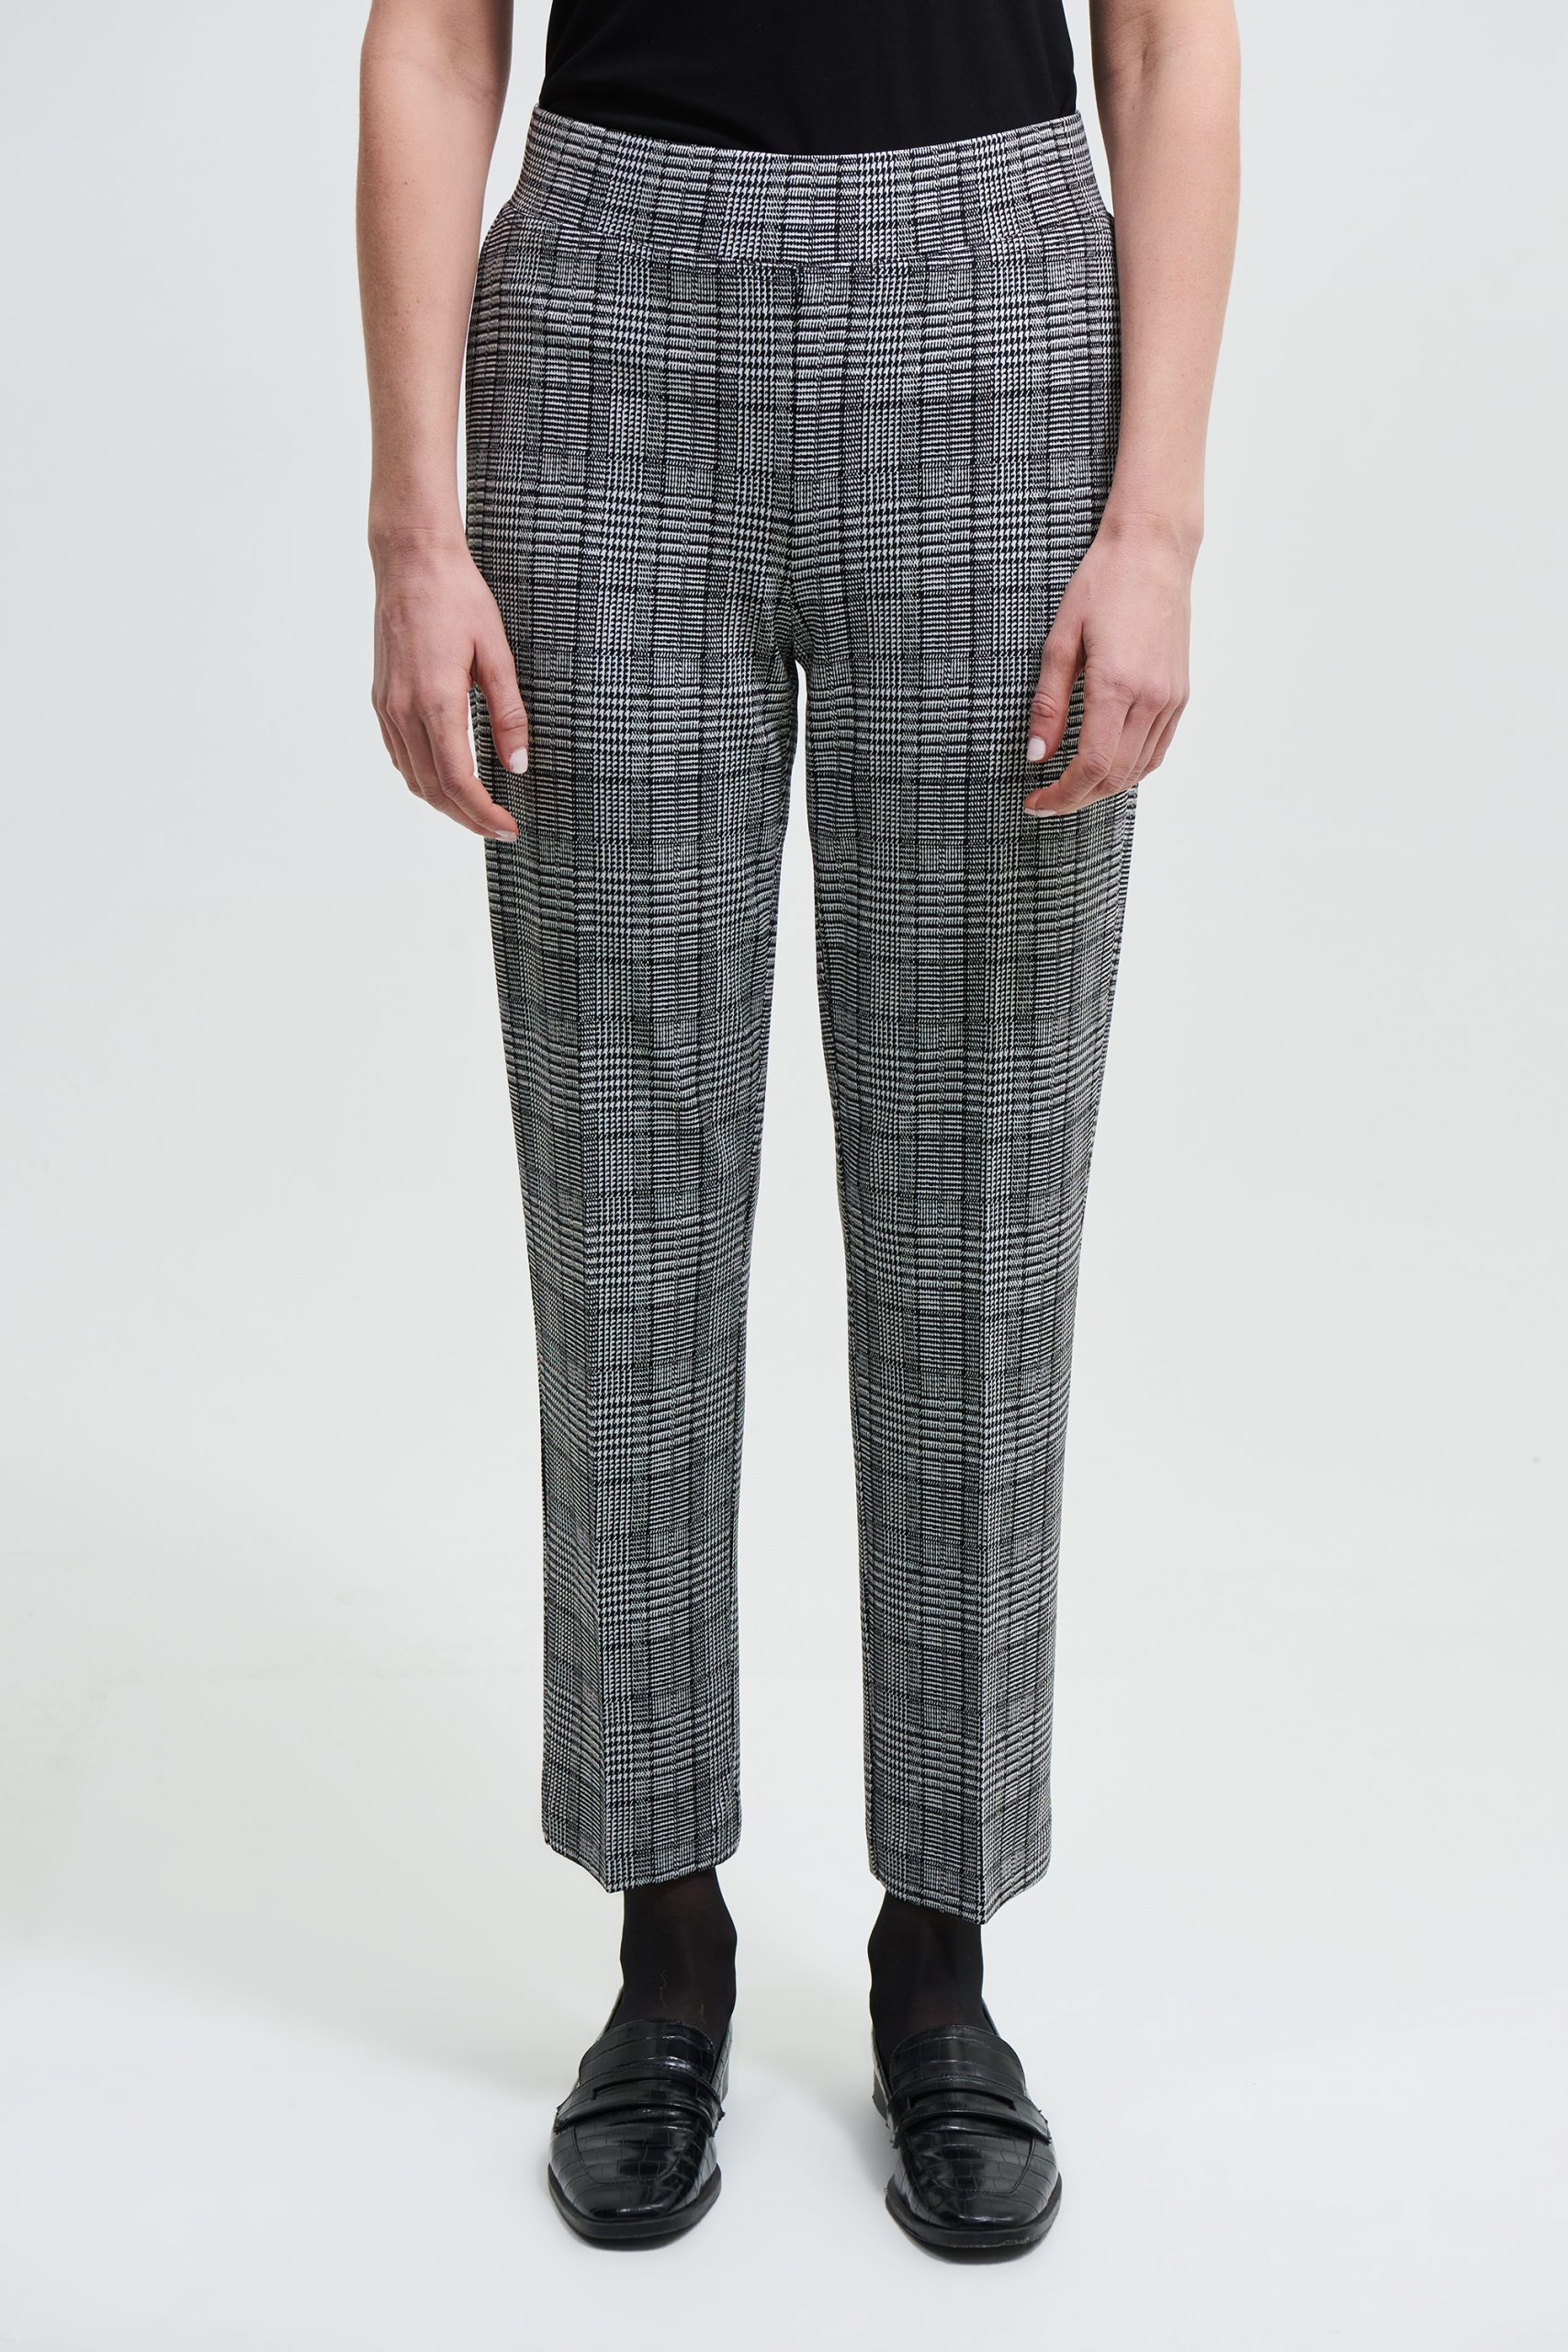 Josephribkoff prince of Wales check trousers 213626